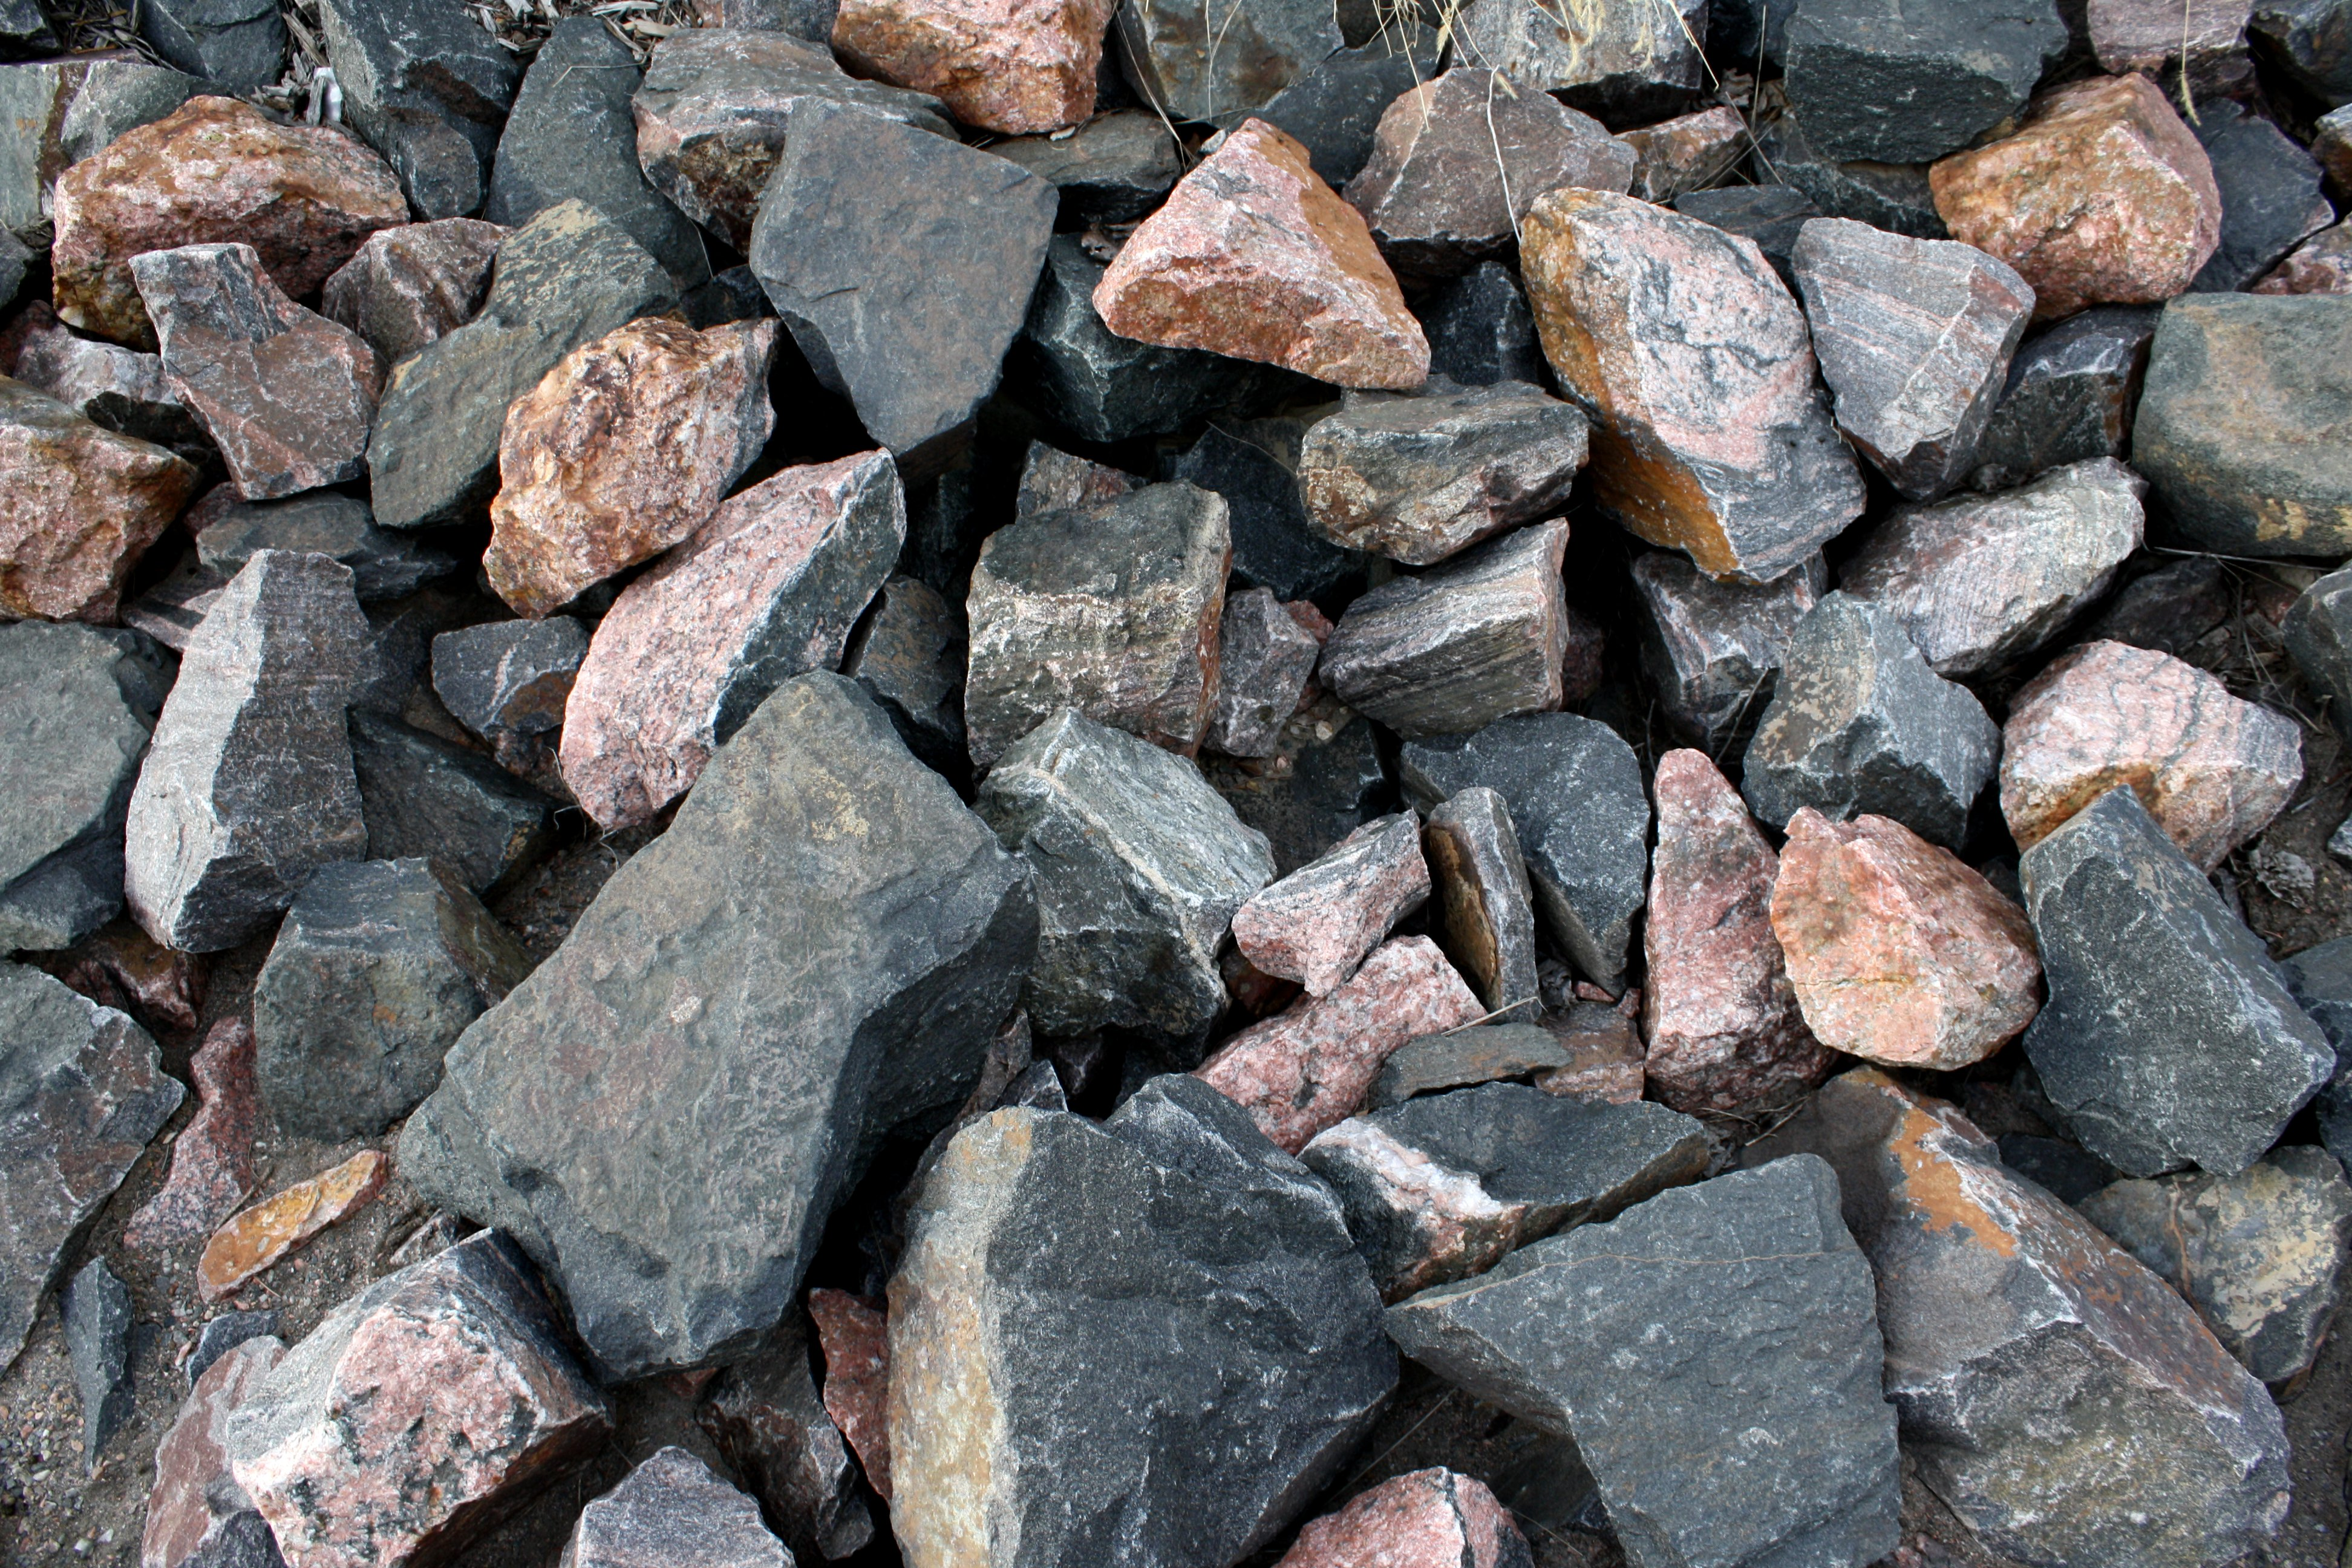 Big Black and Red Rocks Texture Picture | Free Photograph | Photos ...